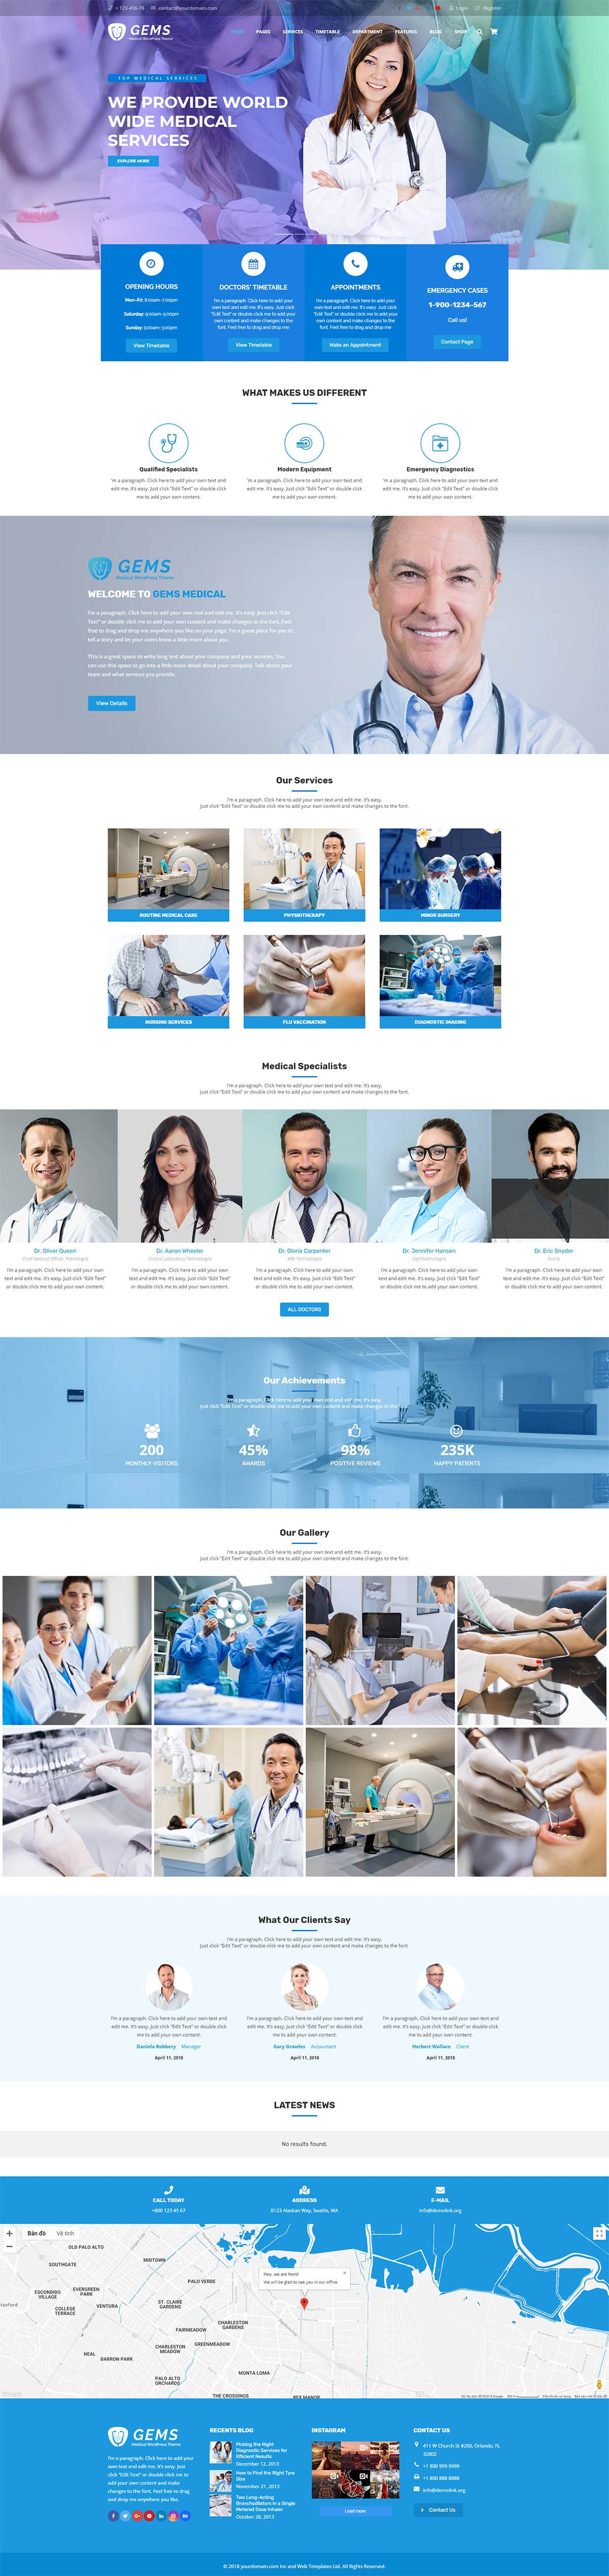 Gems - Medical Drag And Drop WordPress Theme Screenshot 1